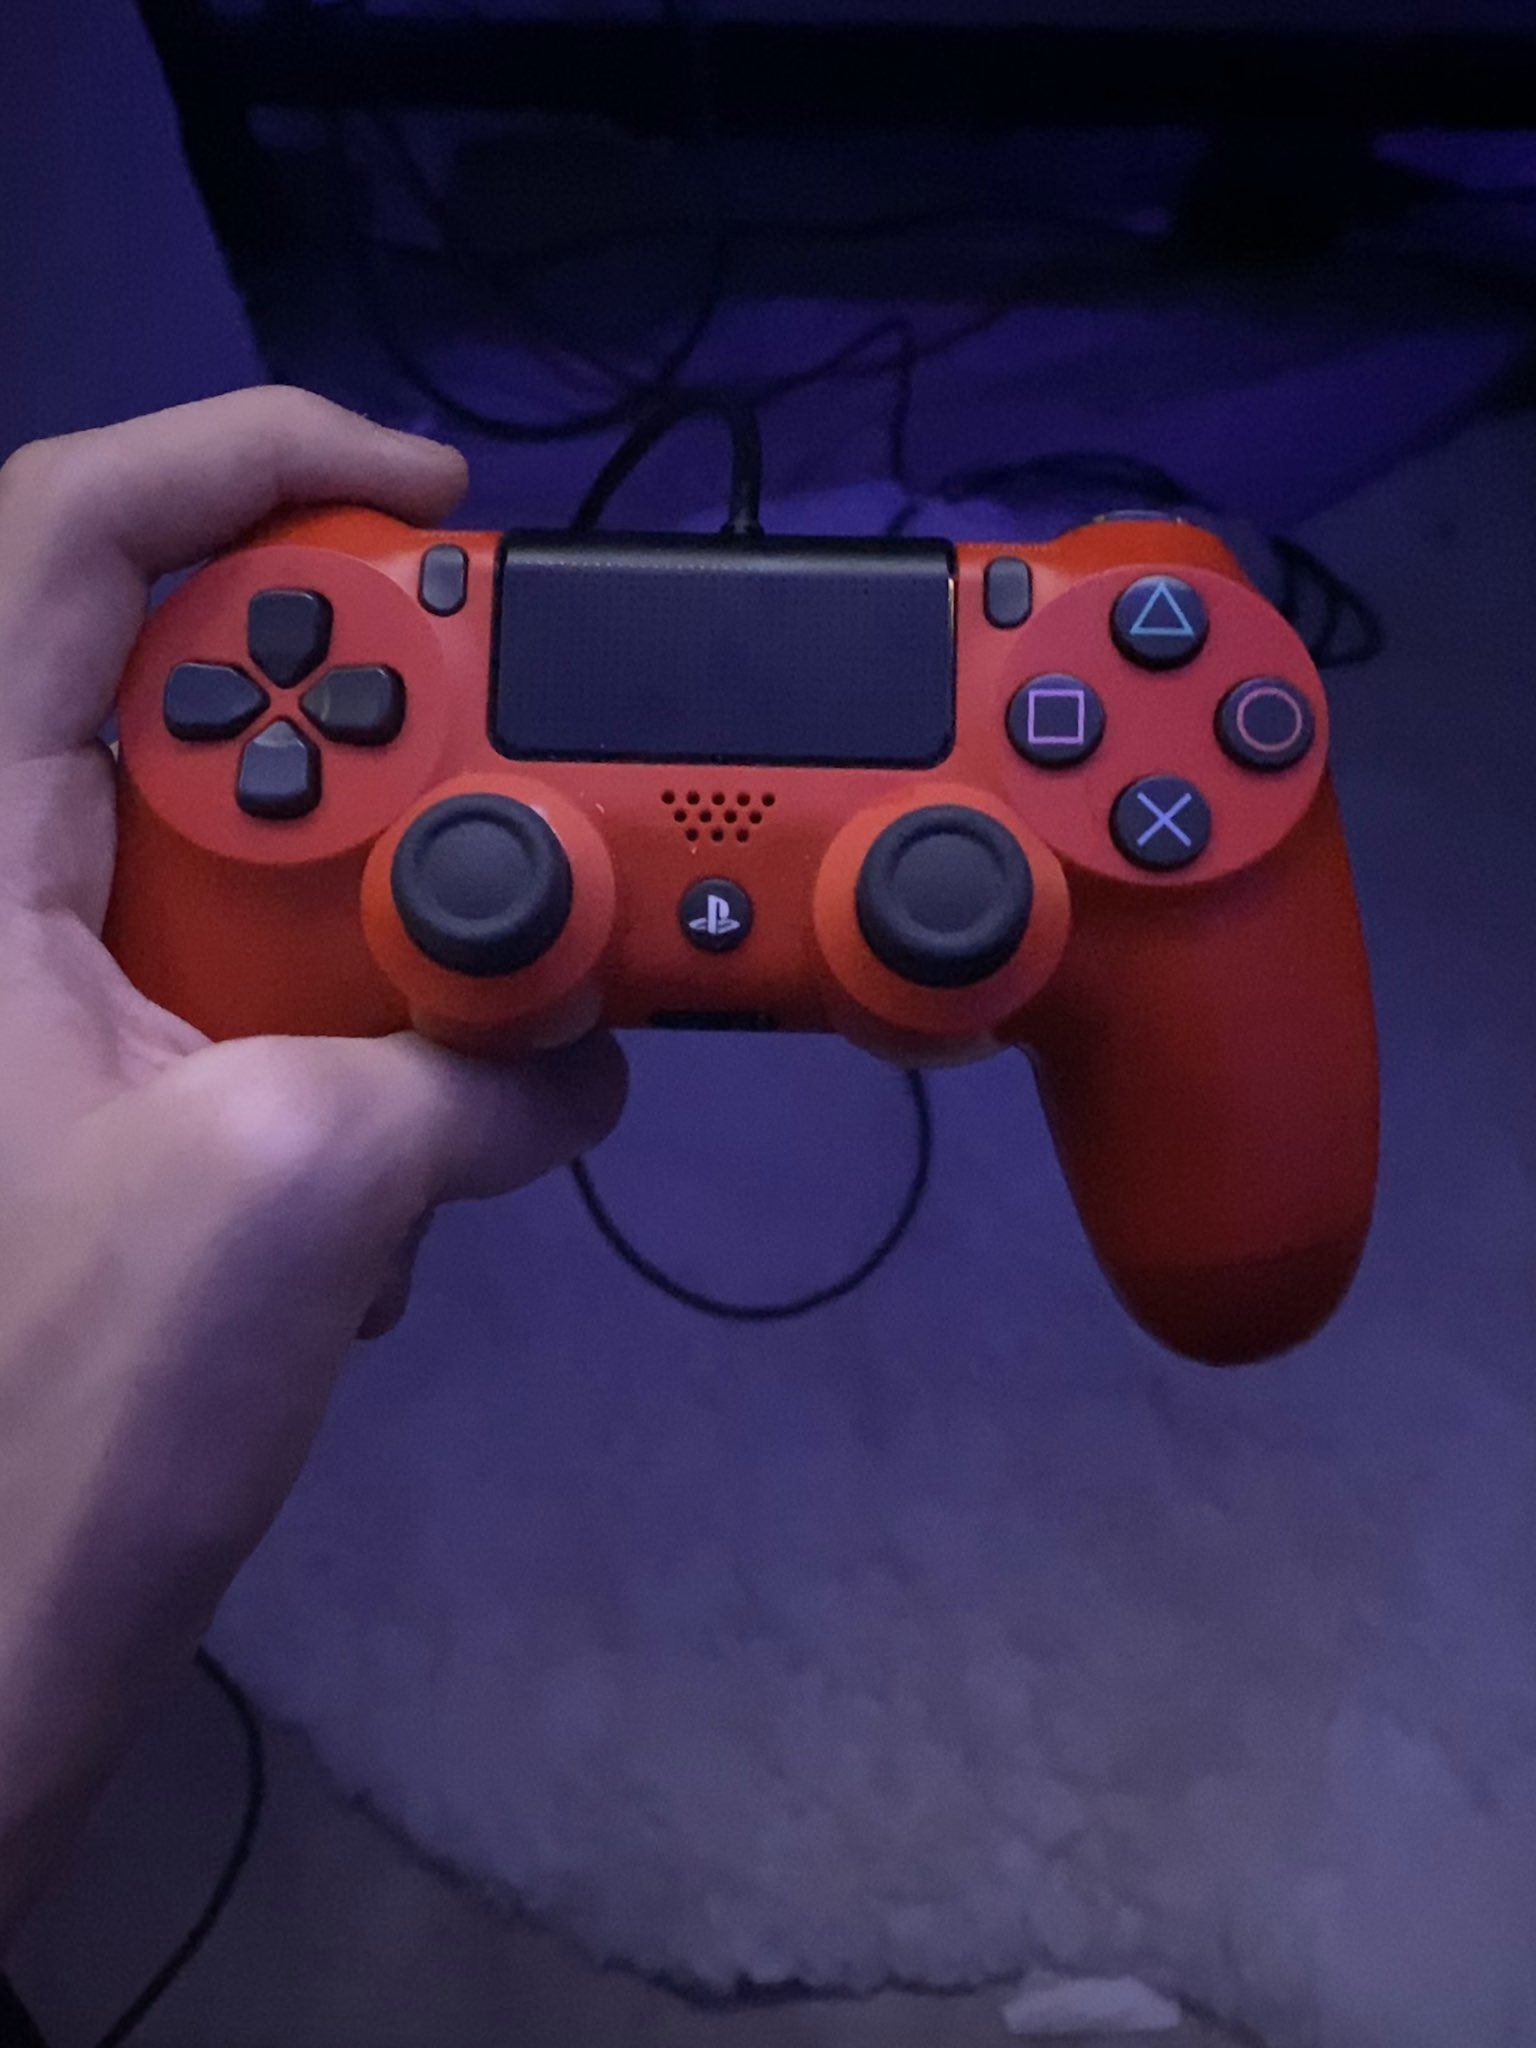 What Controller Does Faze Sway Use : controller, Twitter: